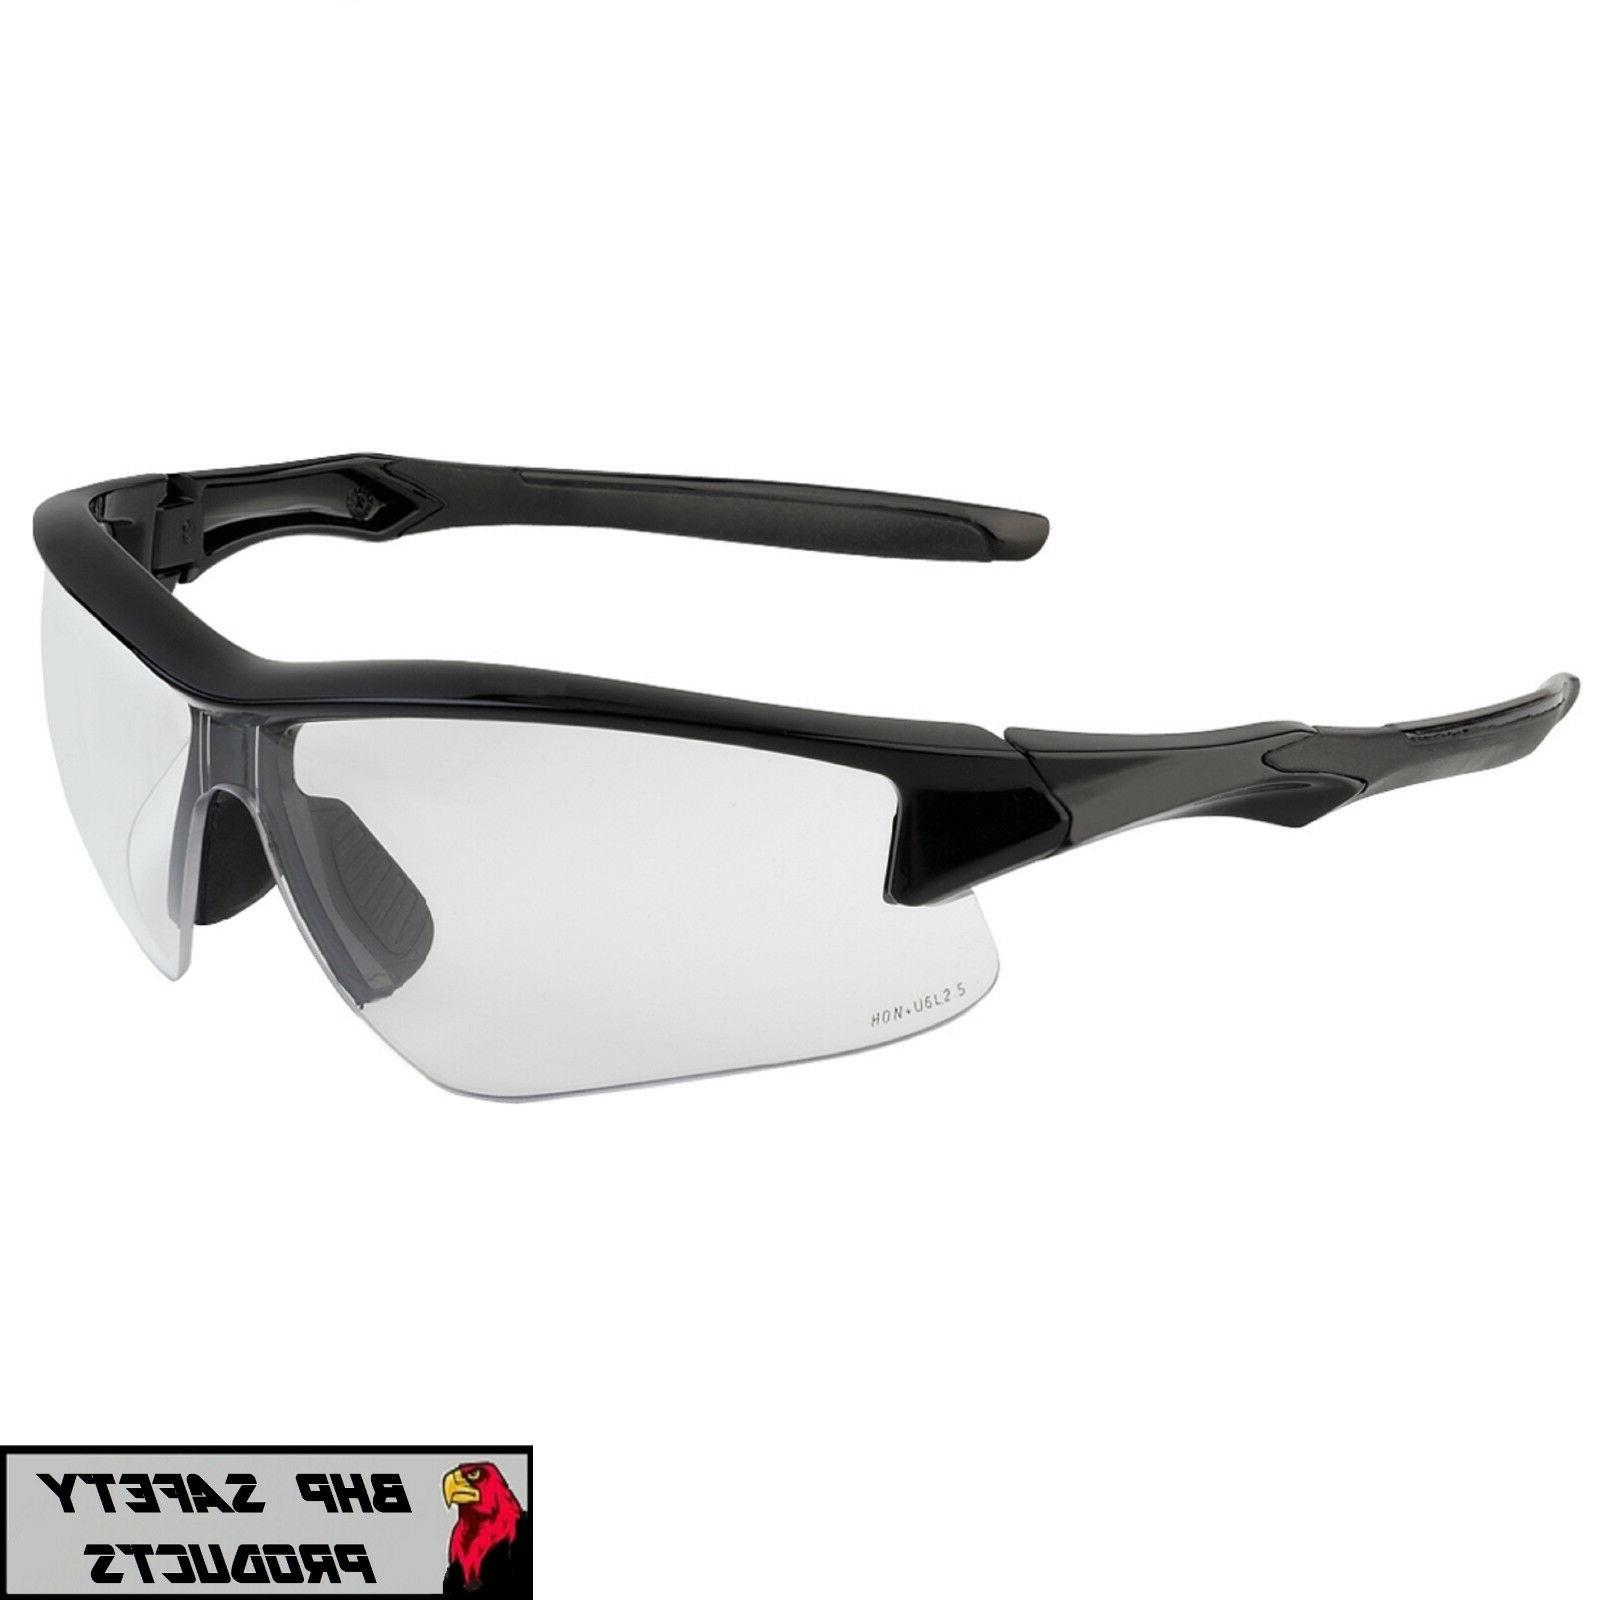 uvex by acadia safety glasses s4160xp clear